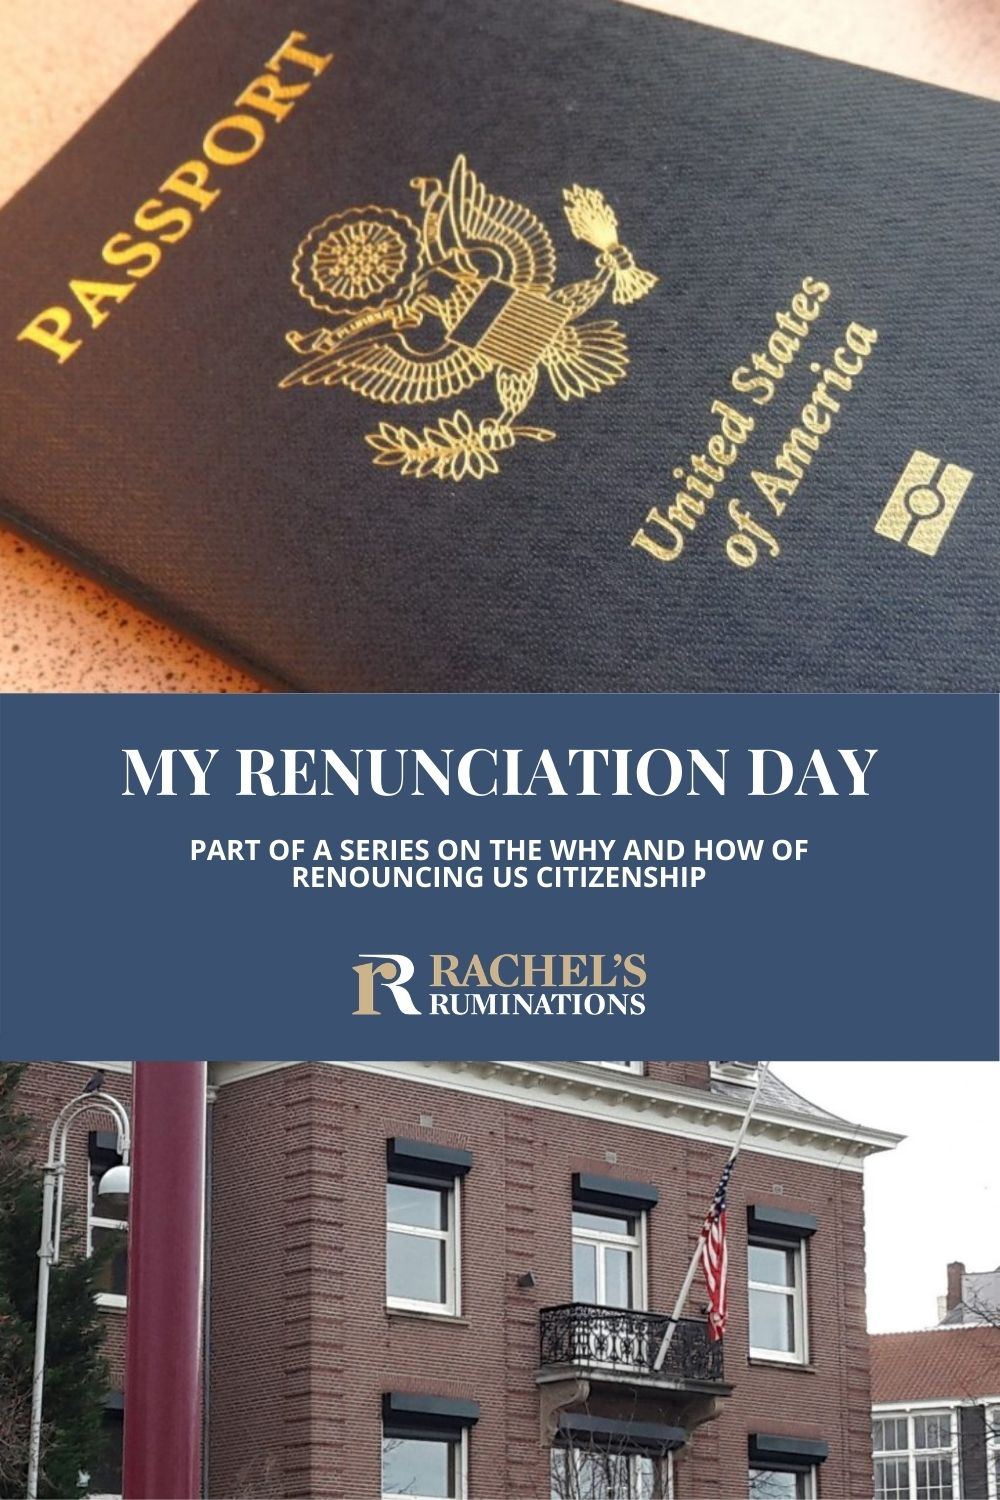 This article describes the day of my renunciation of US citizenship: just the blow-by-blow description of what happened at the US consulate. via @rachelsruminations